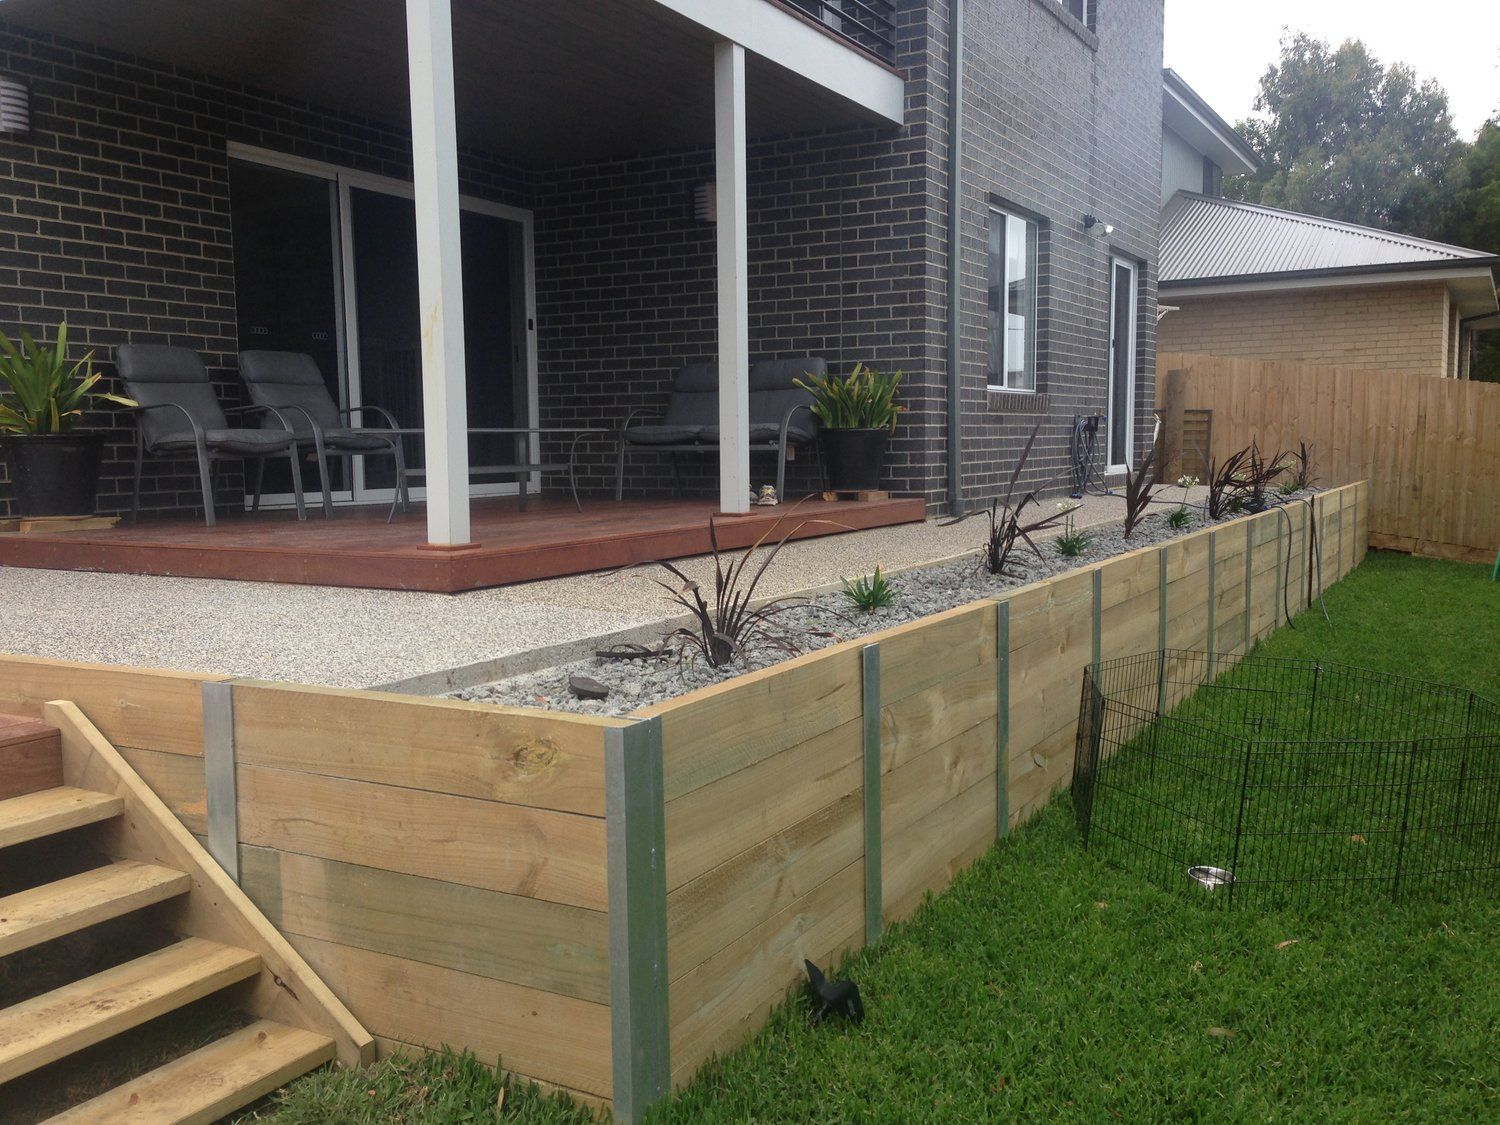 Finished Steel Post And Treated Pine Sleepers Retaining Wall In Jan Juc Garden Retaining Wall Retaining Wall Patio Retaining Wall